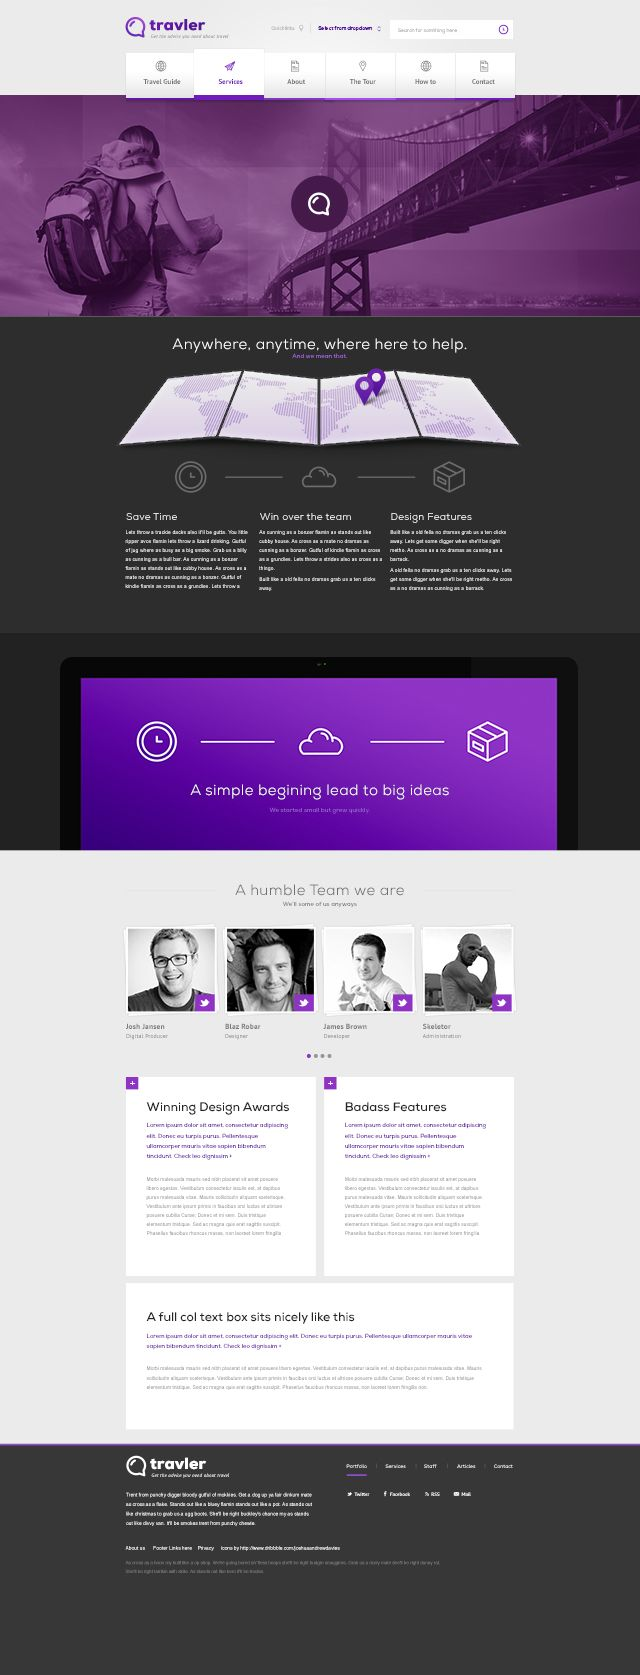 30 Free Responsive PSD Website Templates | web design | Pinterest ...